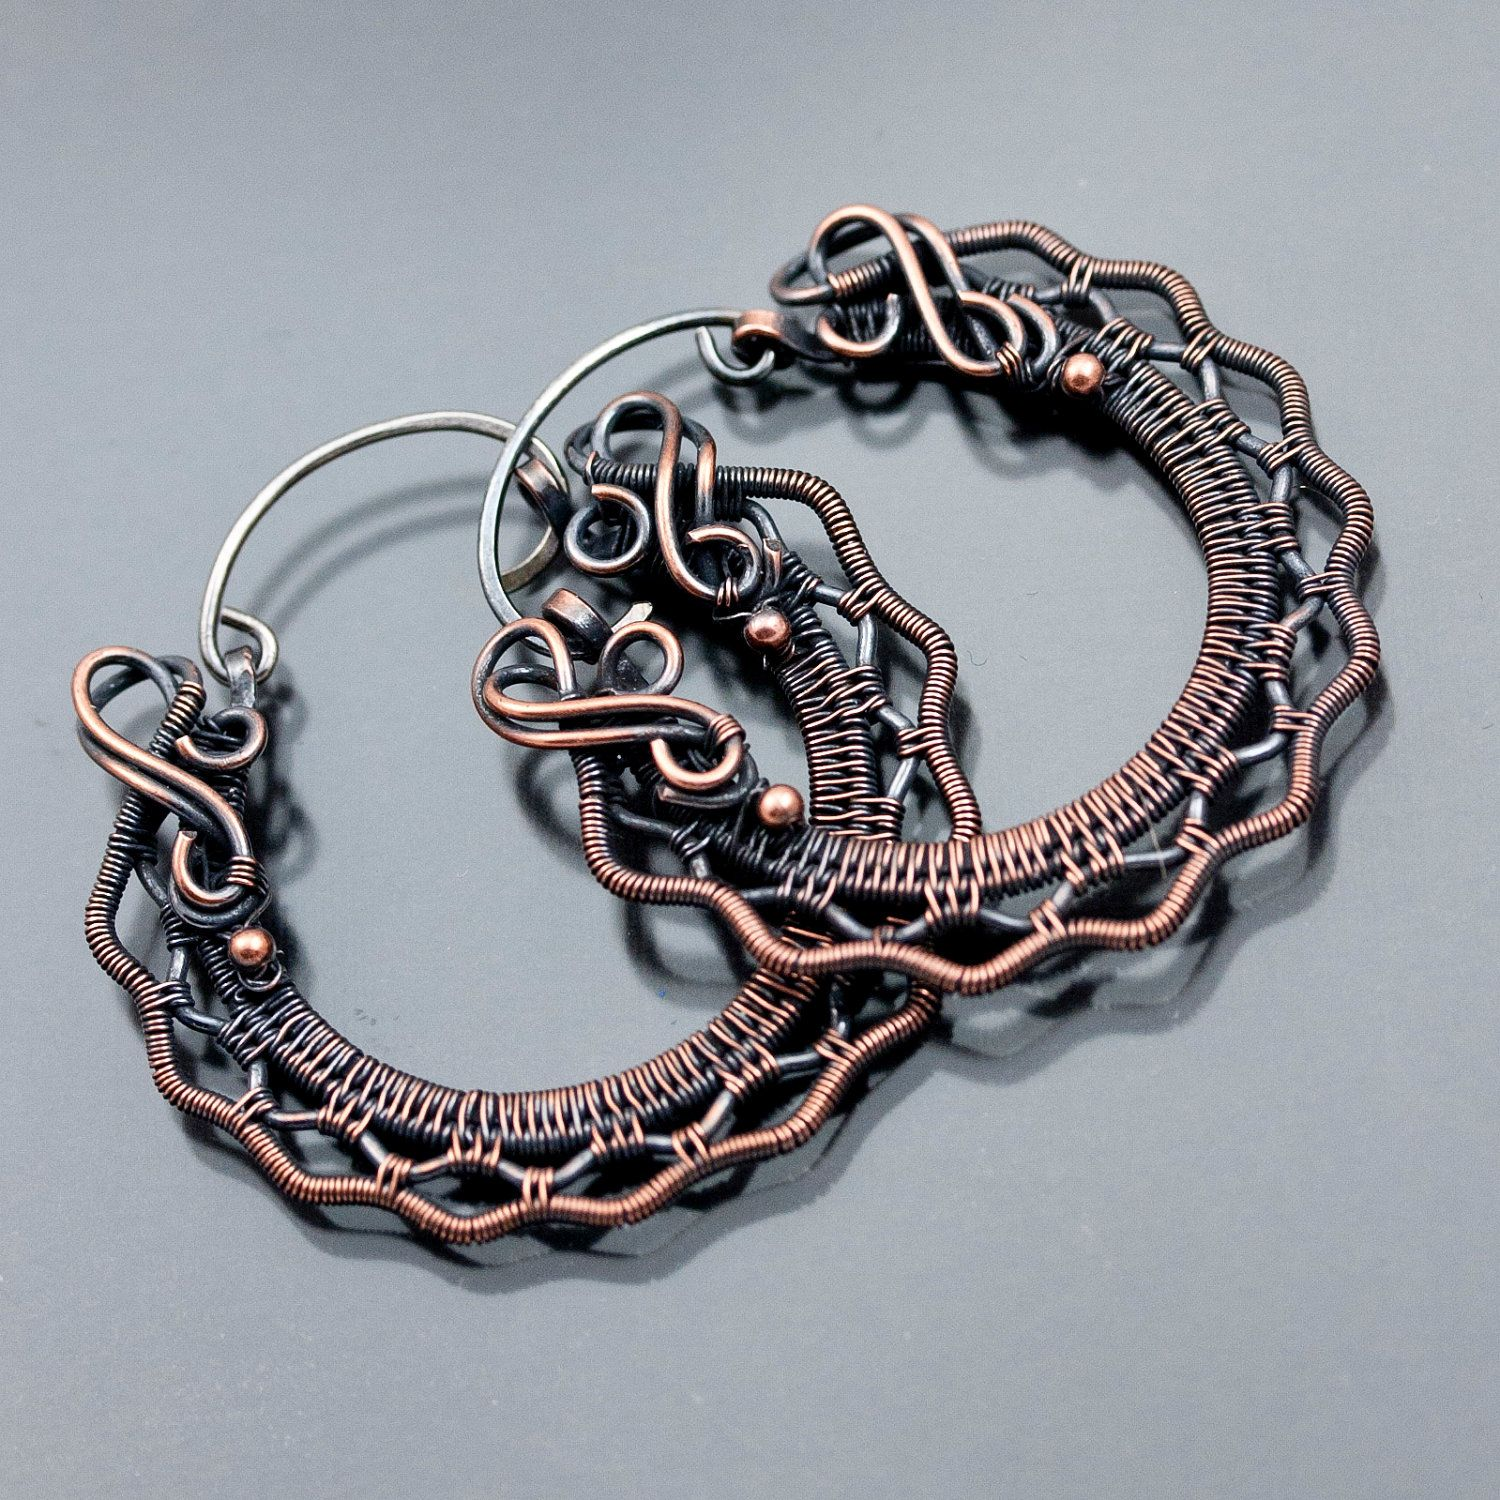 Earrings | Sarah Thompson.  Copper with sterling silver ear wires.